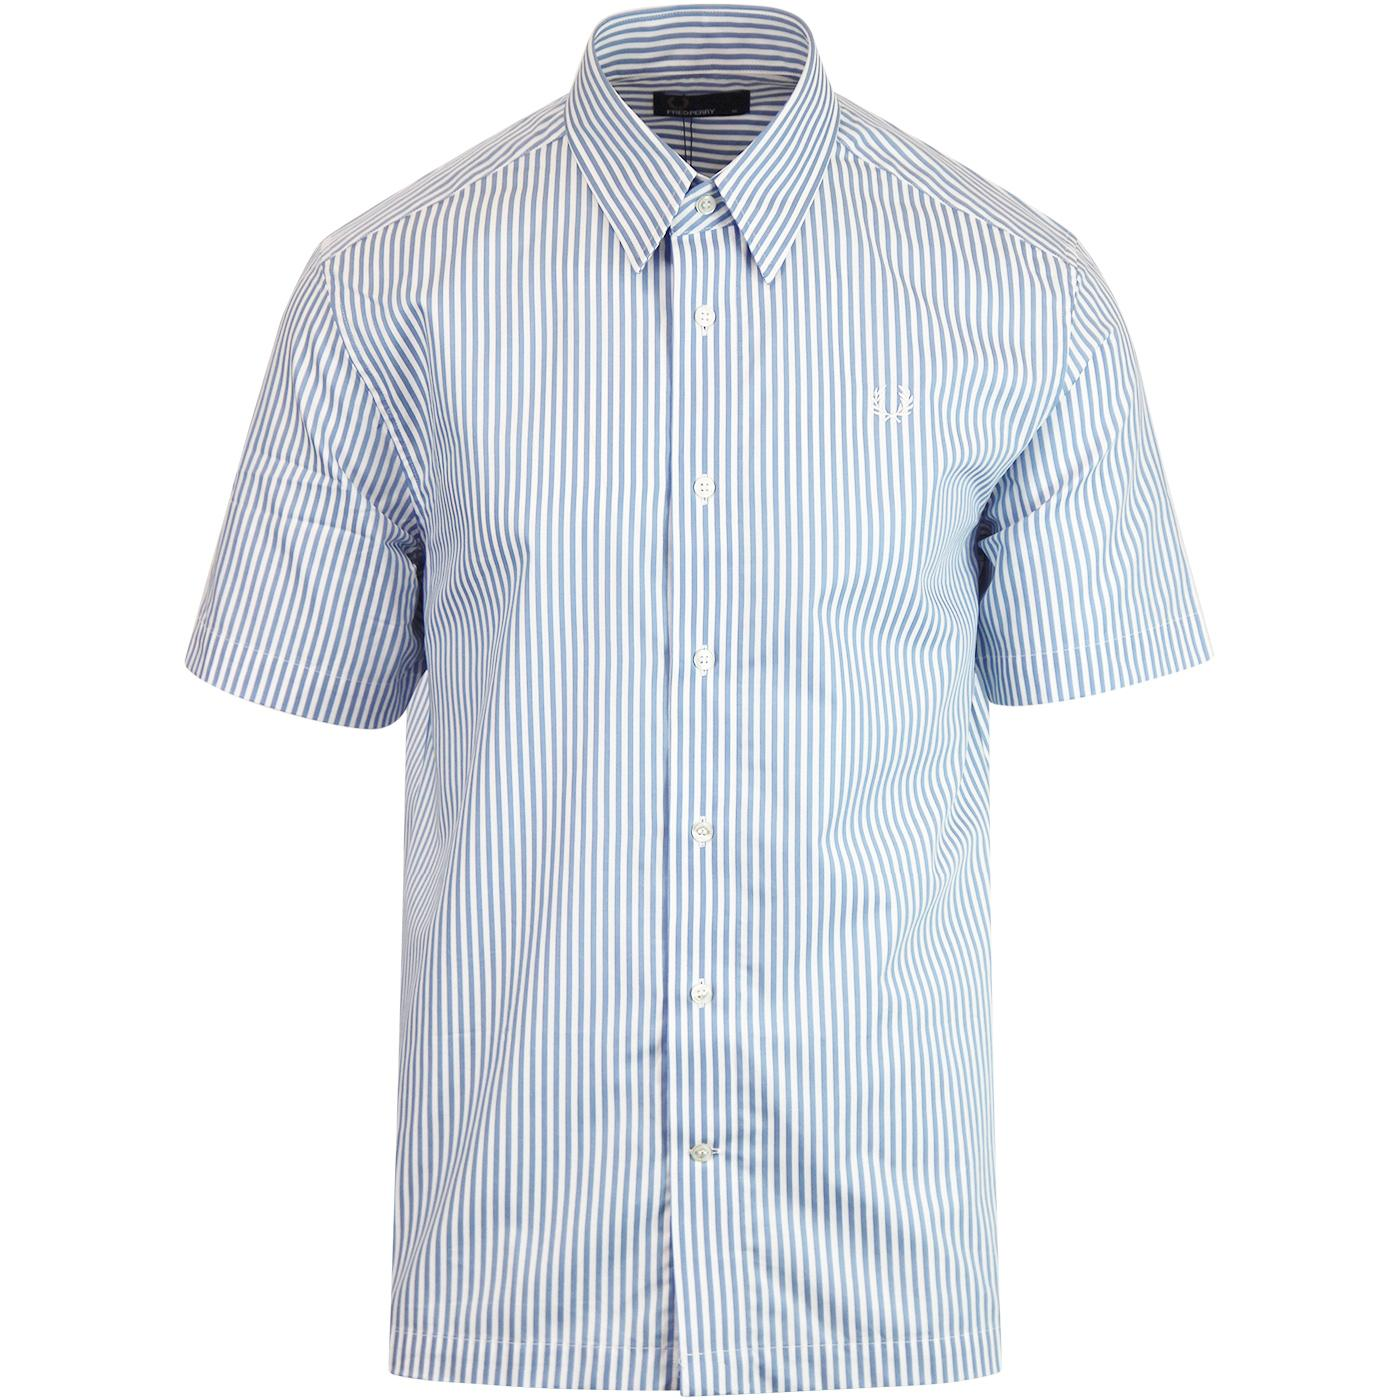 FRED PERRY S/S Vertical Stripe 60s Mod Shirt (Sky)